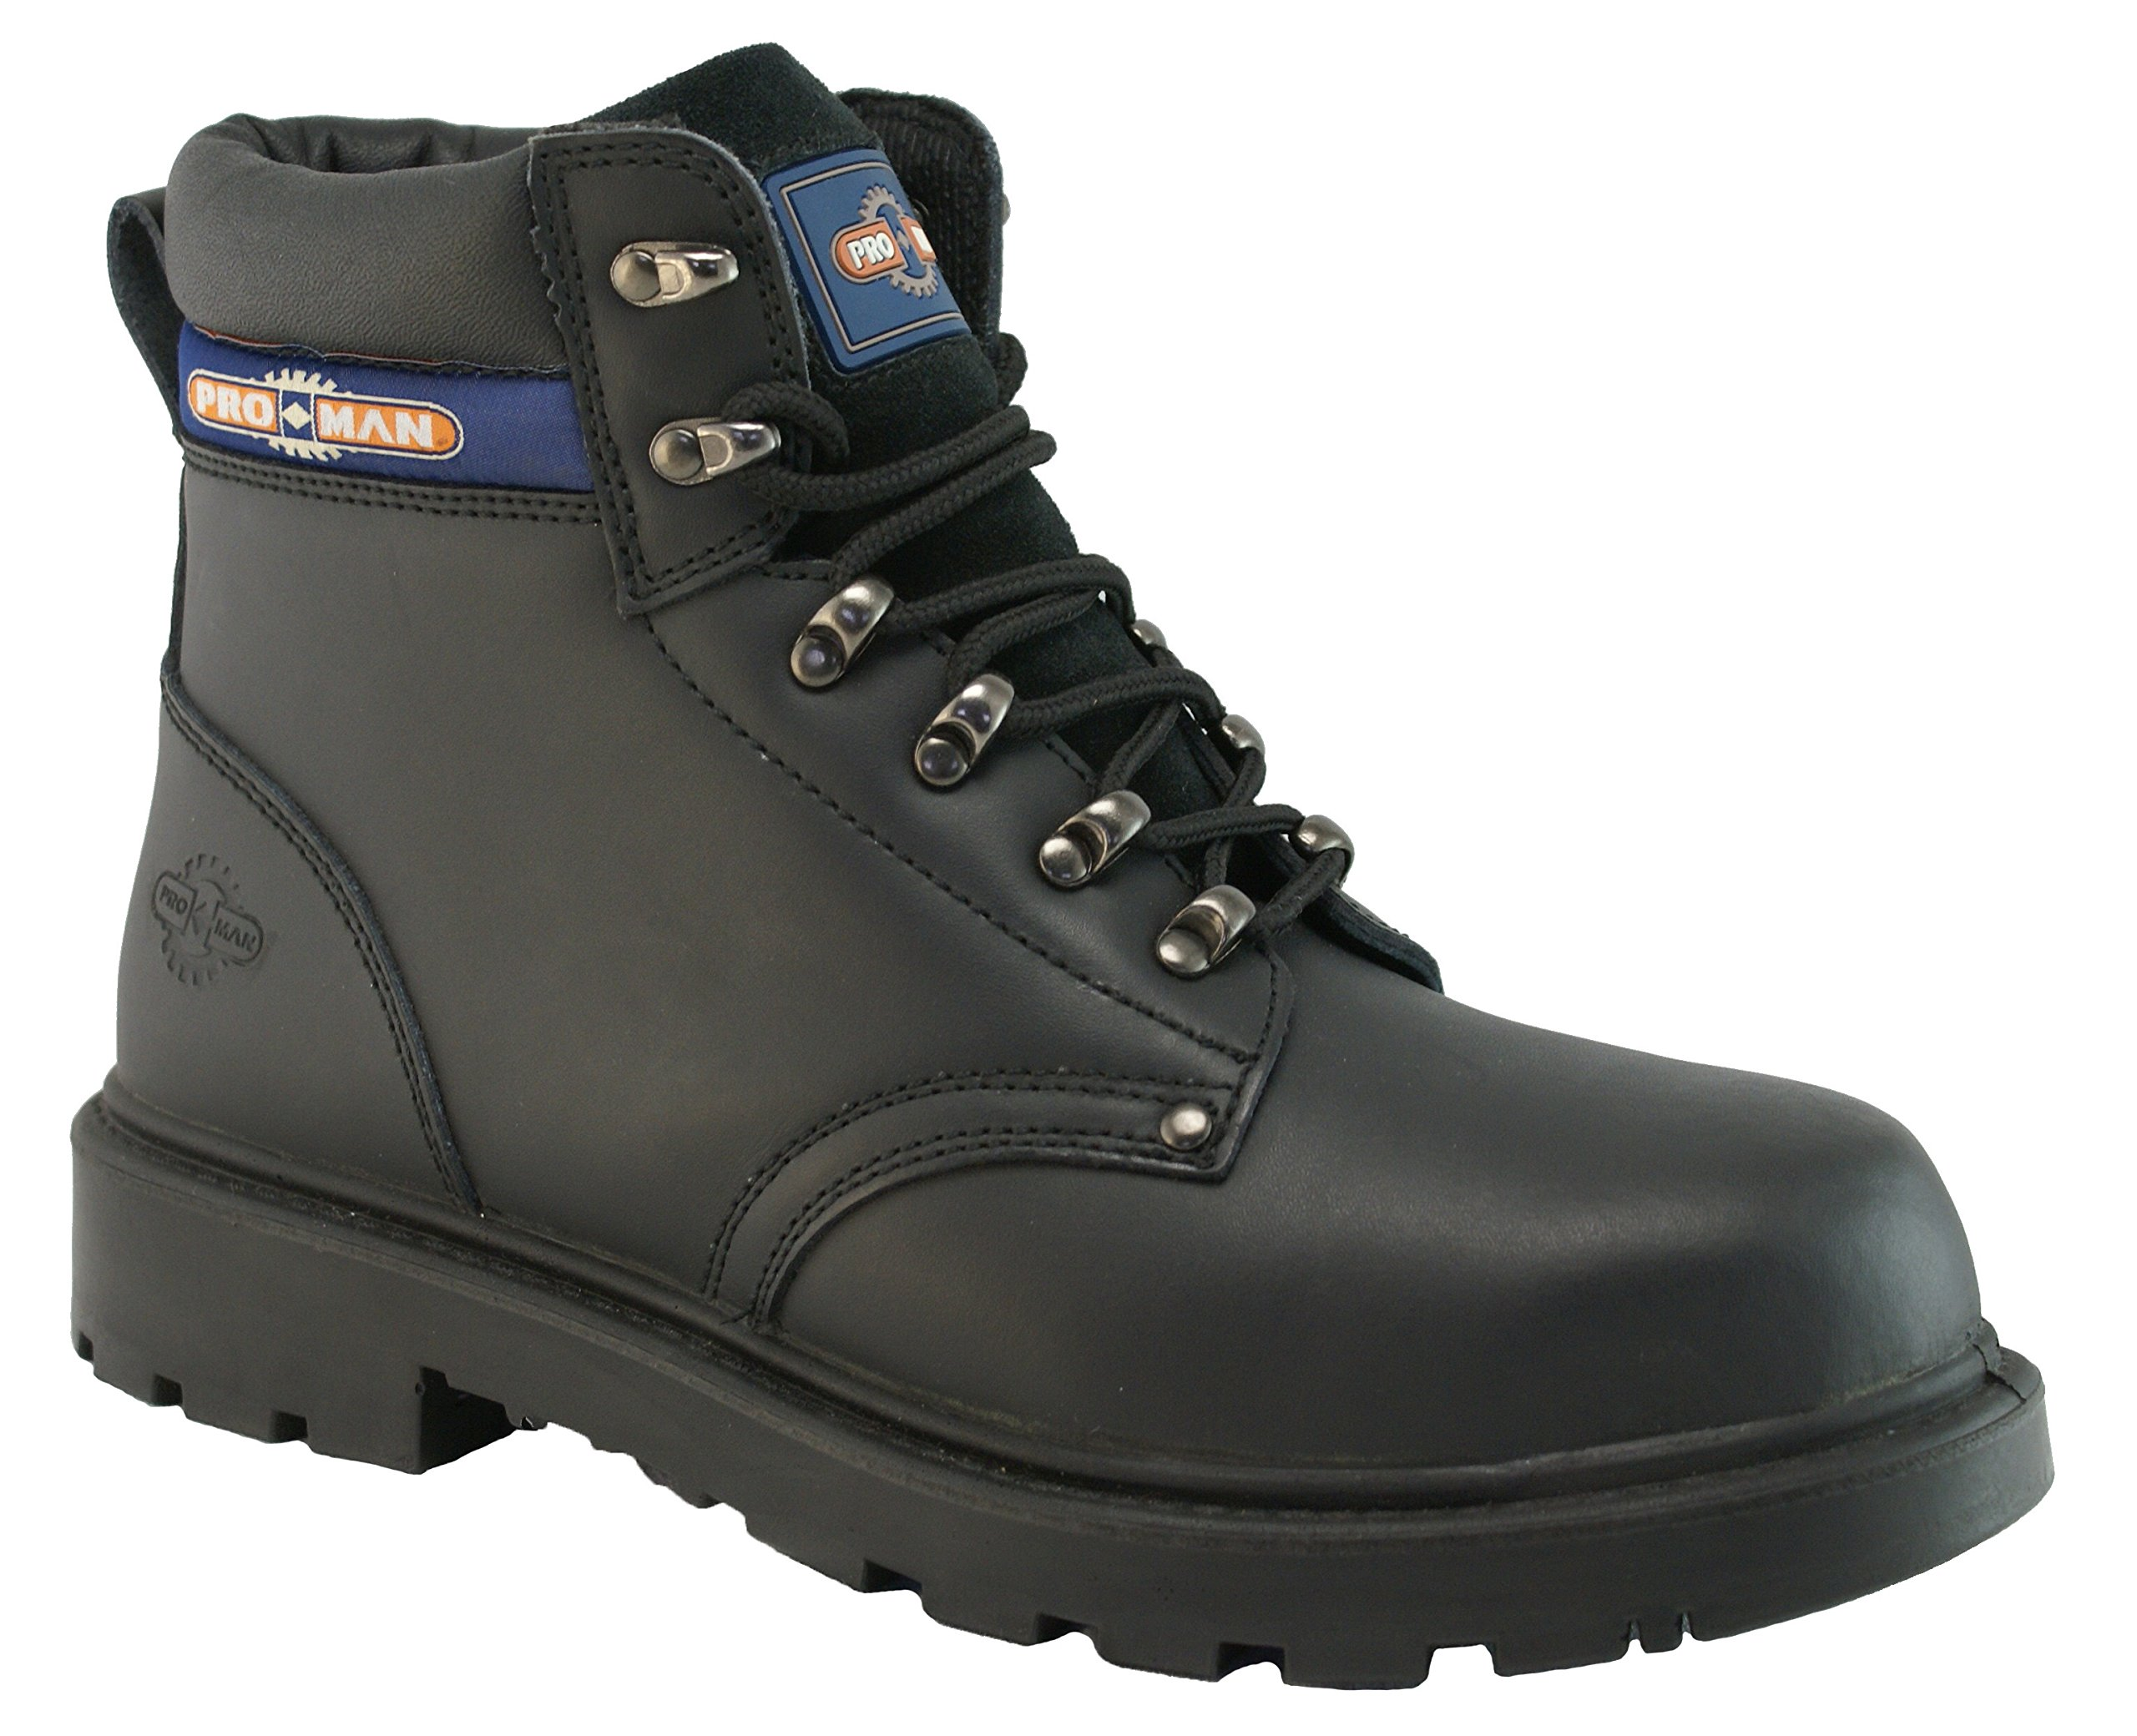 Pro-Man PM4002 Men's S3 Outsize Black Steel Toe Cap Safety & Work Boots (US Size 17, Black)